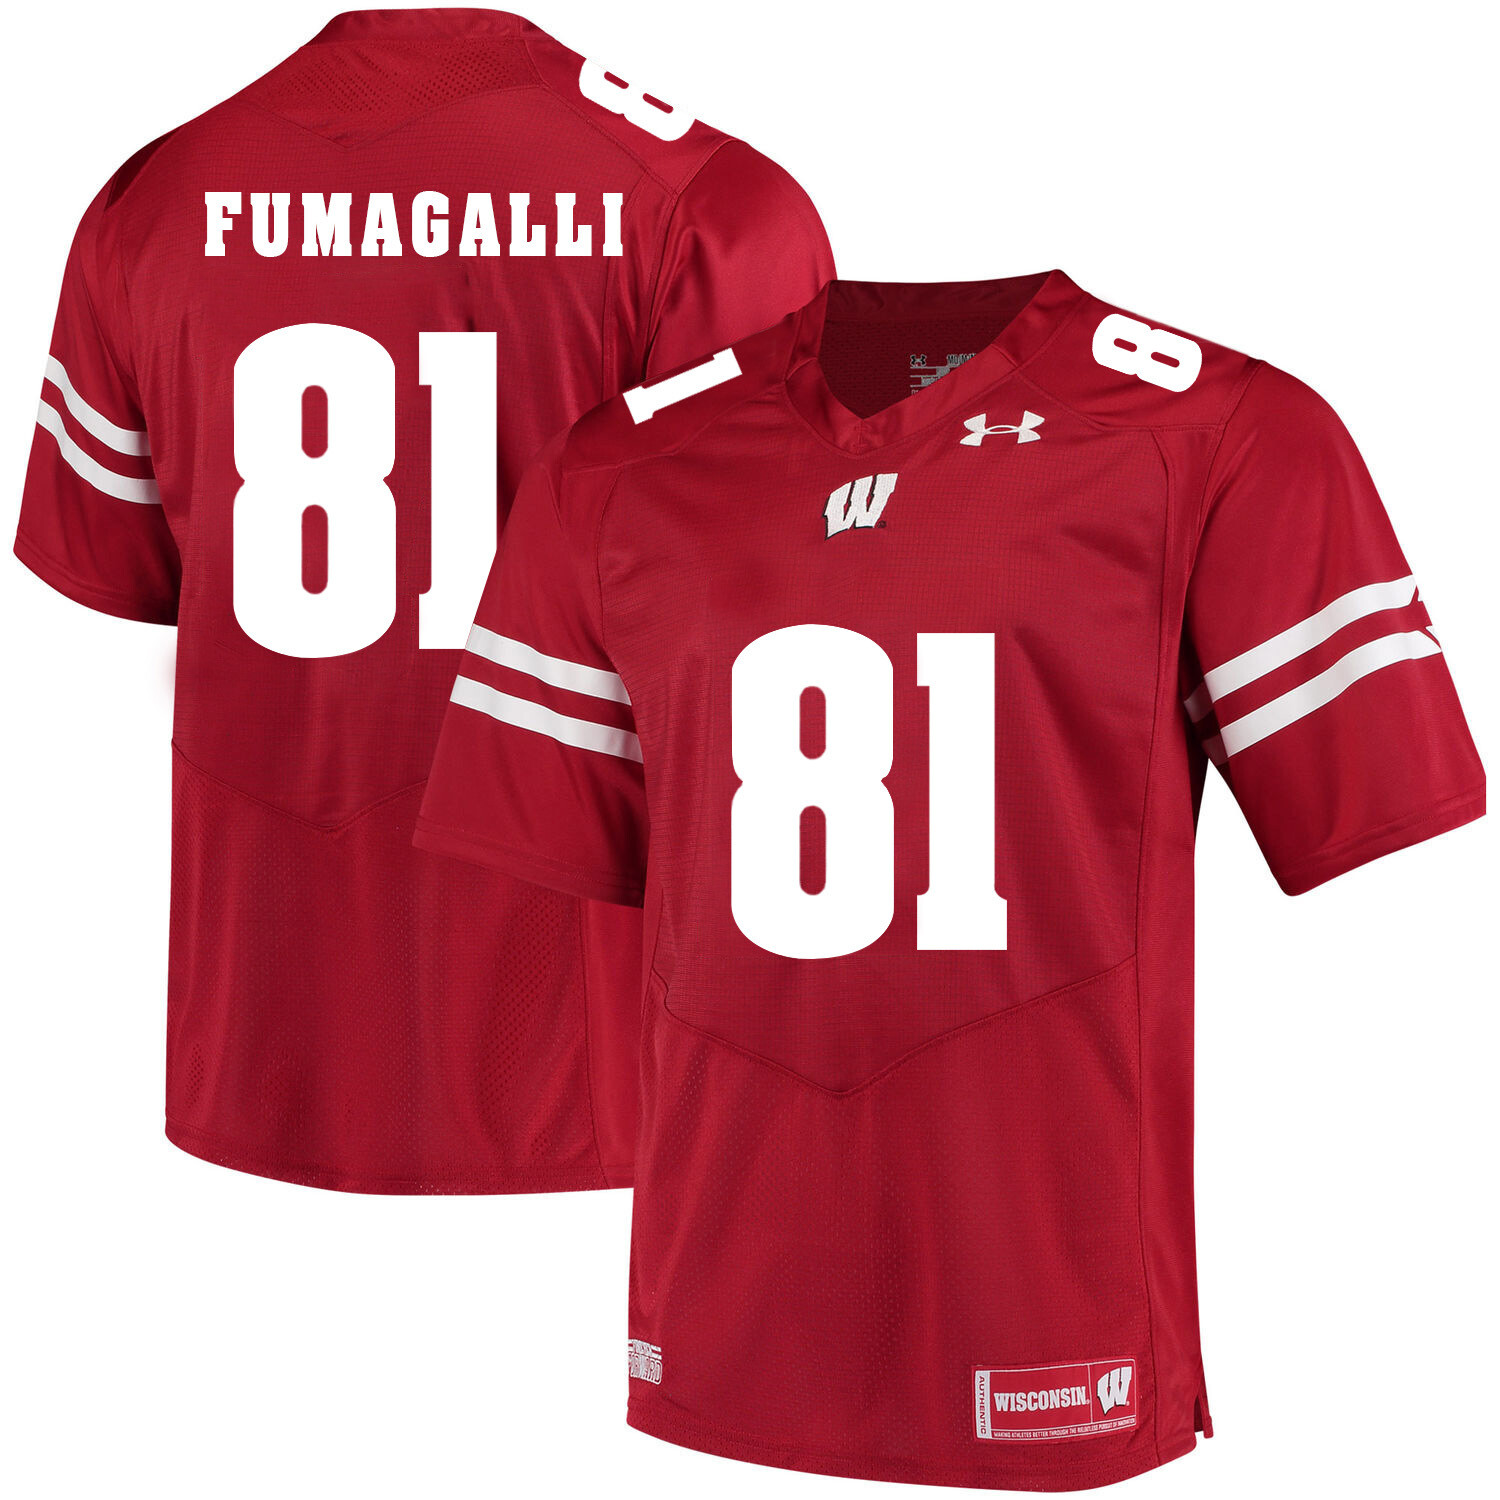 Wisconsin Badgers #81 Troy Fumagalli NCAA College Football Jersey Red